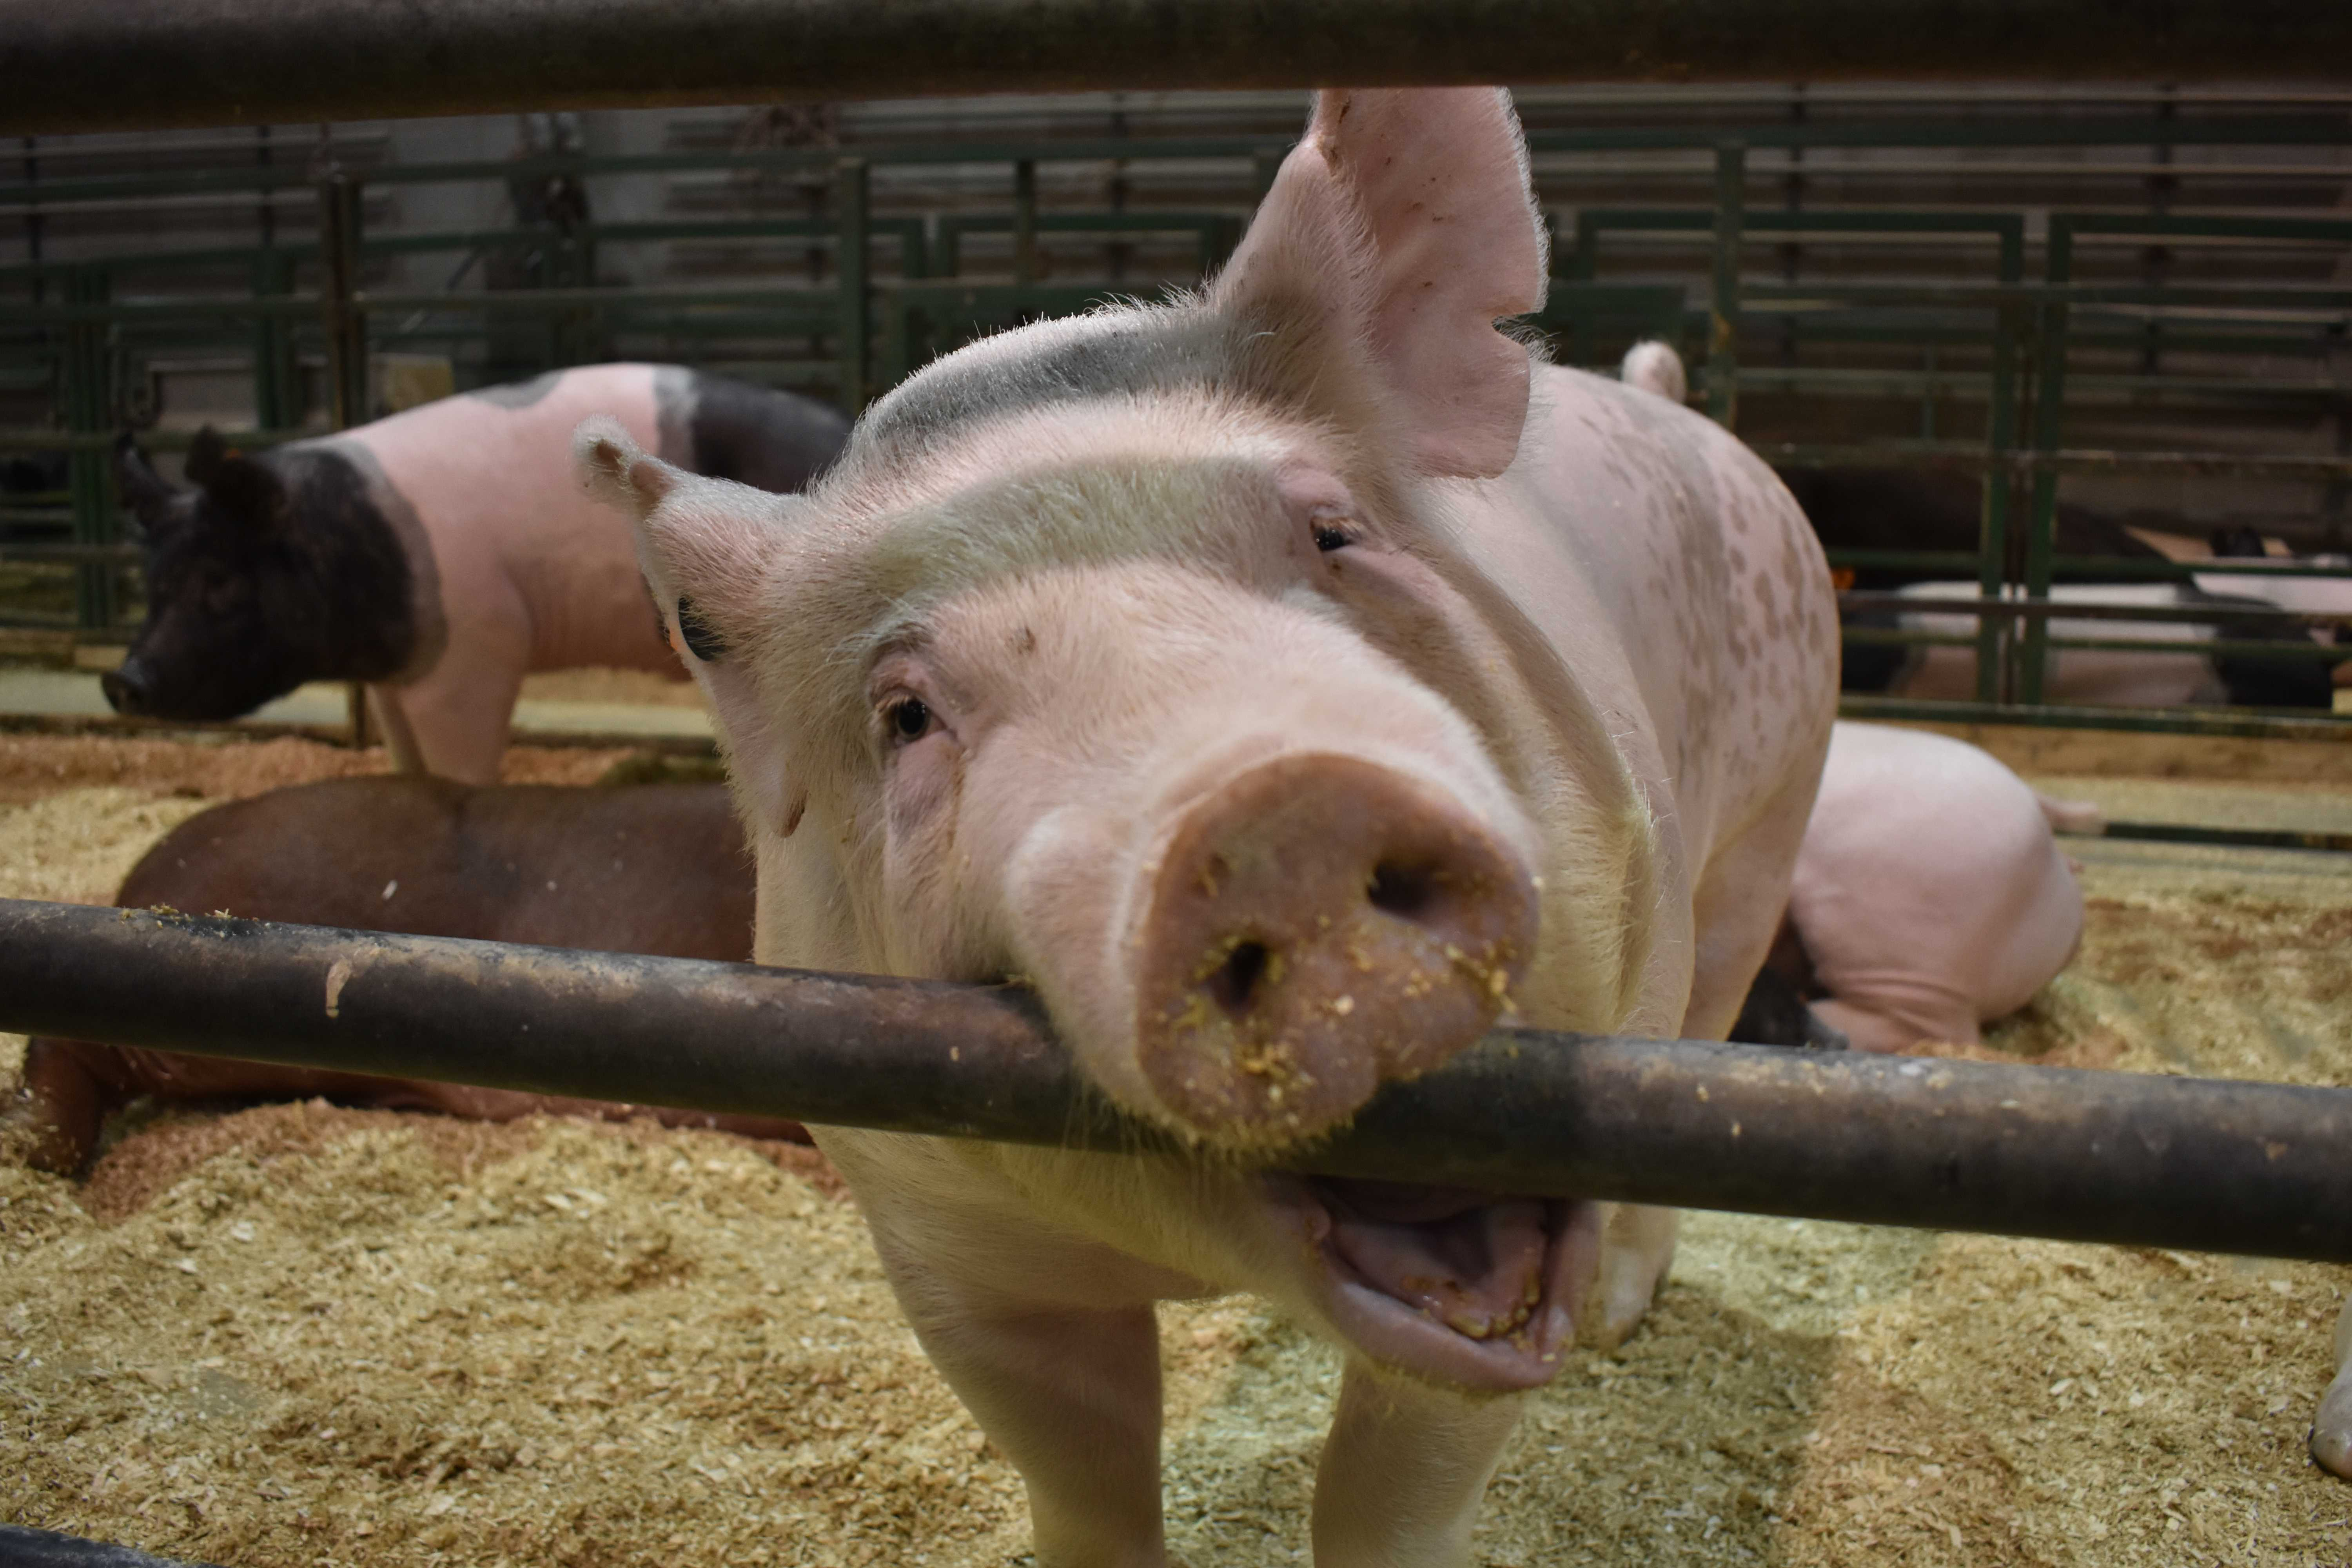 FILE PHOTO A pig stays in the Animal Science Arena for Little International March 28, 2017. The pigs, sheep and goats are housed in the Animal Science Arena before and during Little